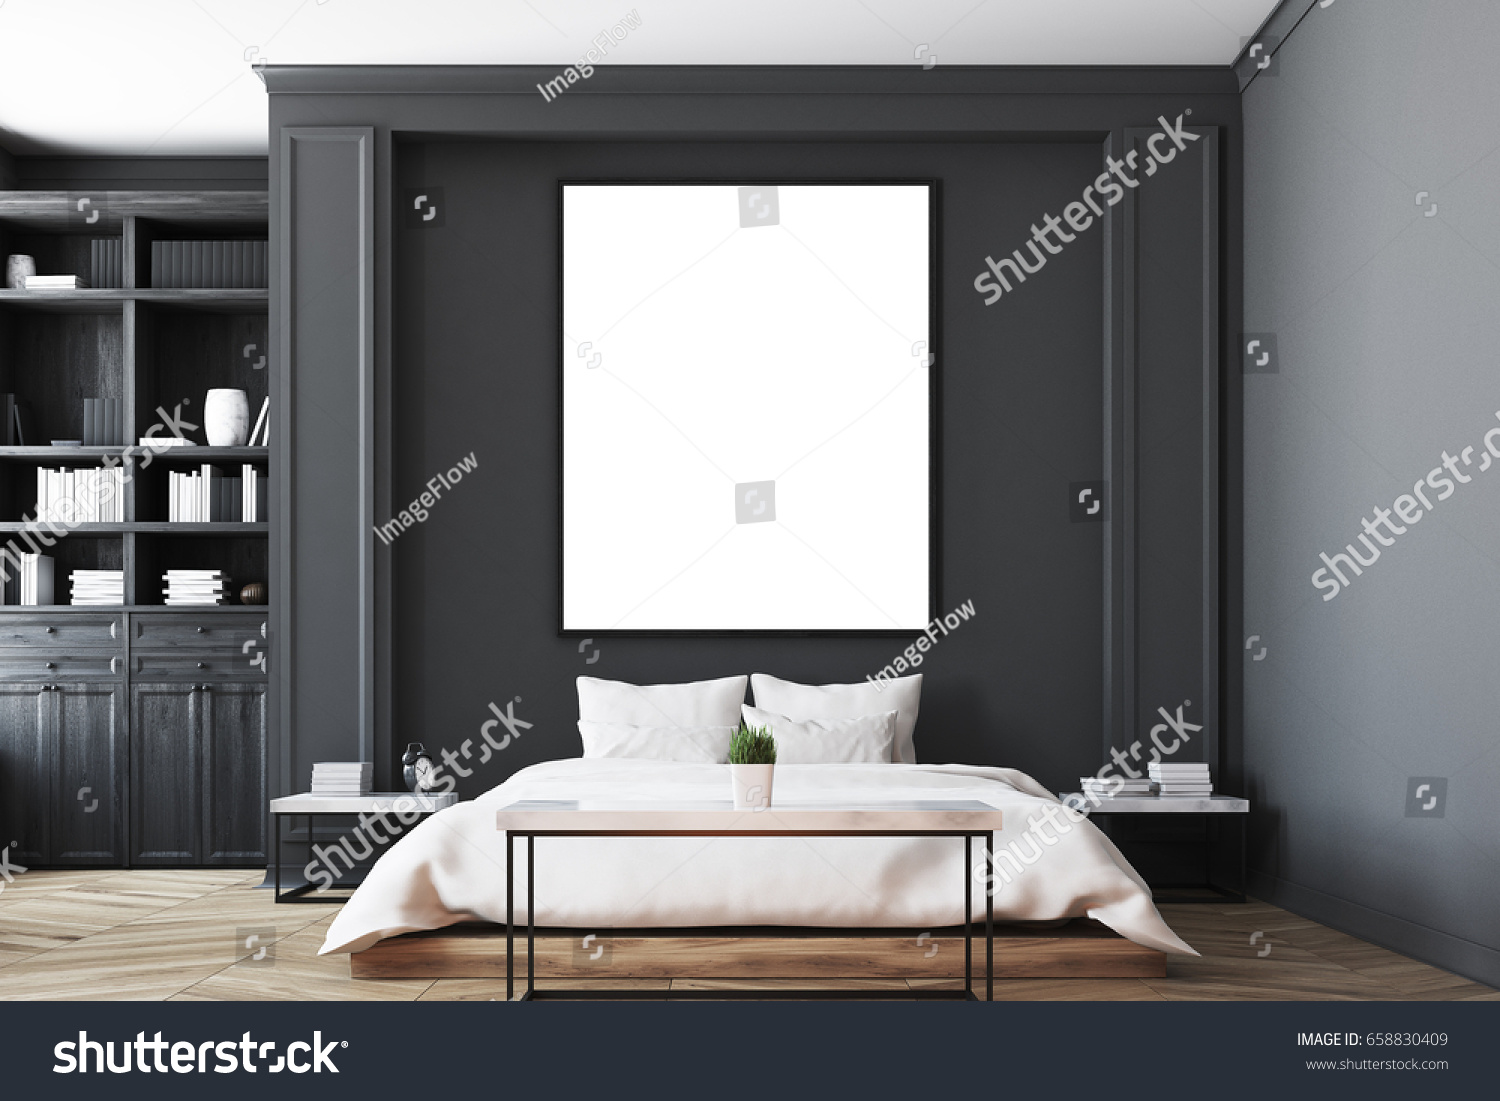 luxury bedroom interior with gray and black walls a bookcase a double bed - Black Luxury Bedrooms